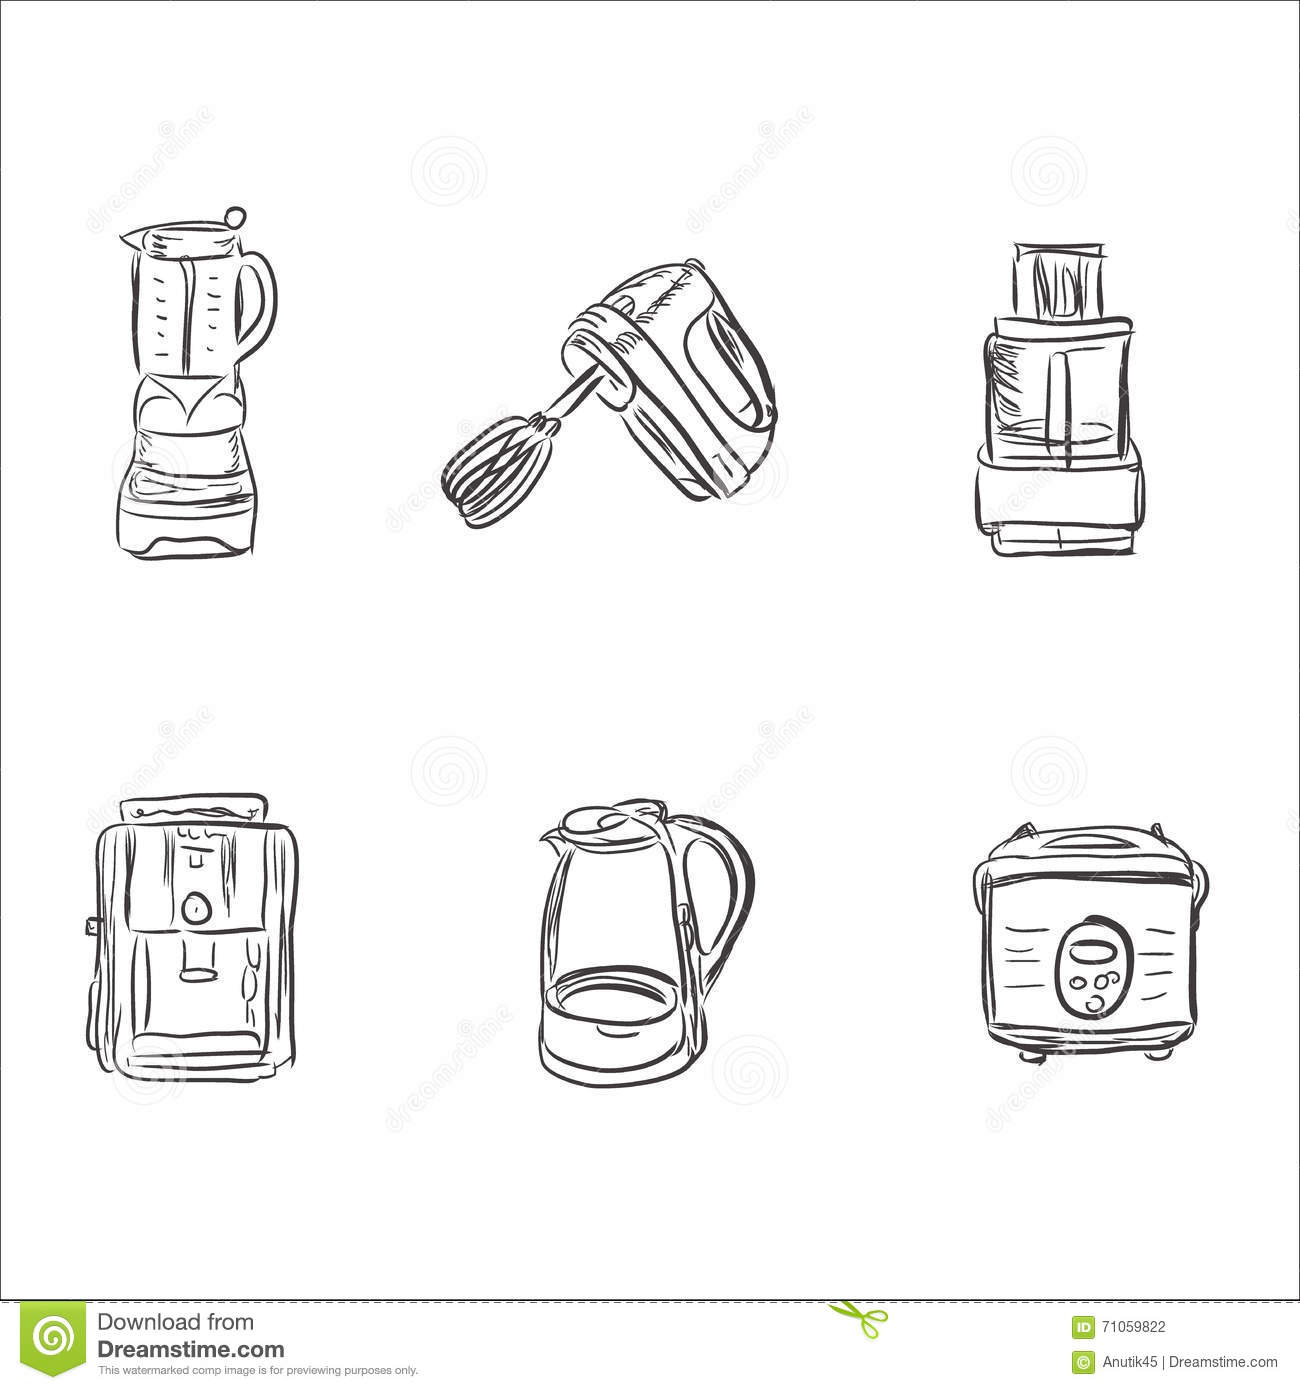 Set Of Kitchen Appliances In Sketch Style, Design Elements